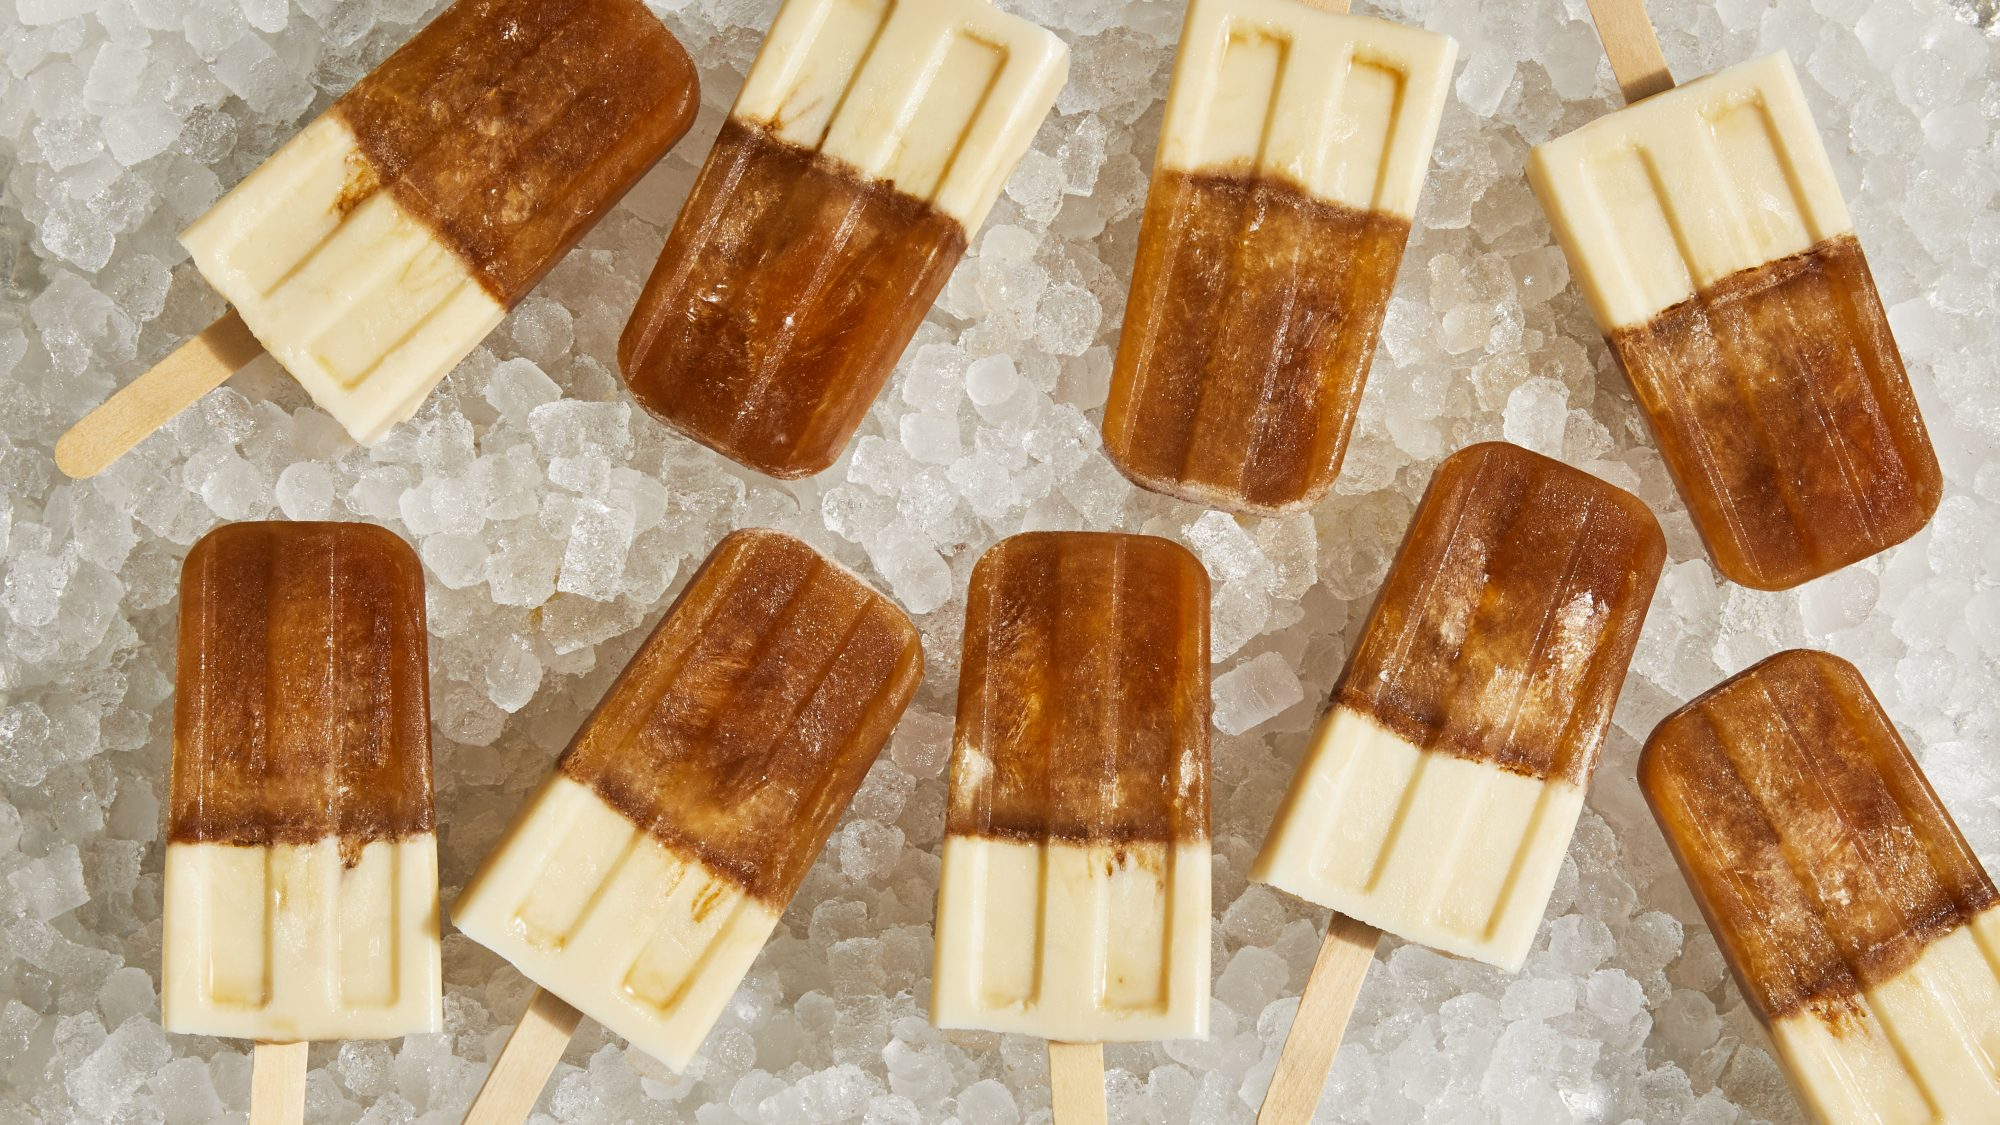 Southern Living SEO- Root Beer Float Popsicles